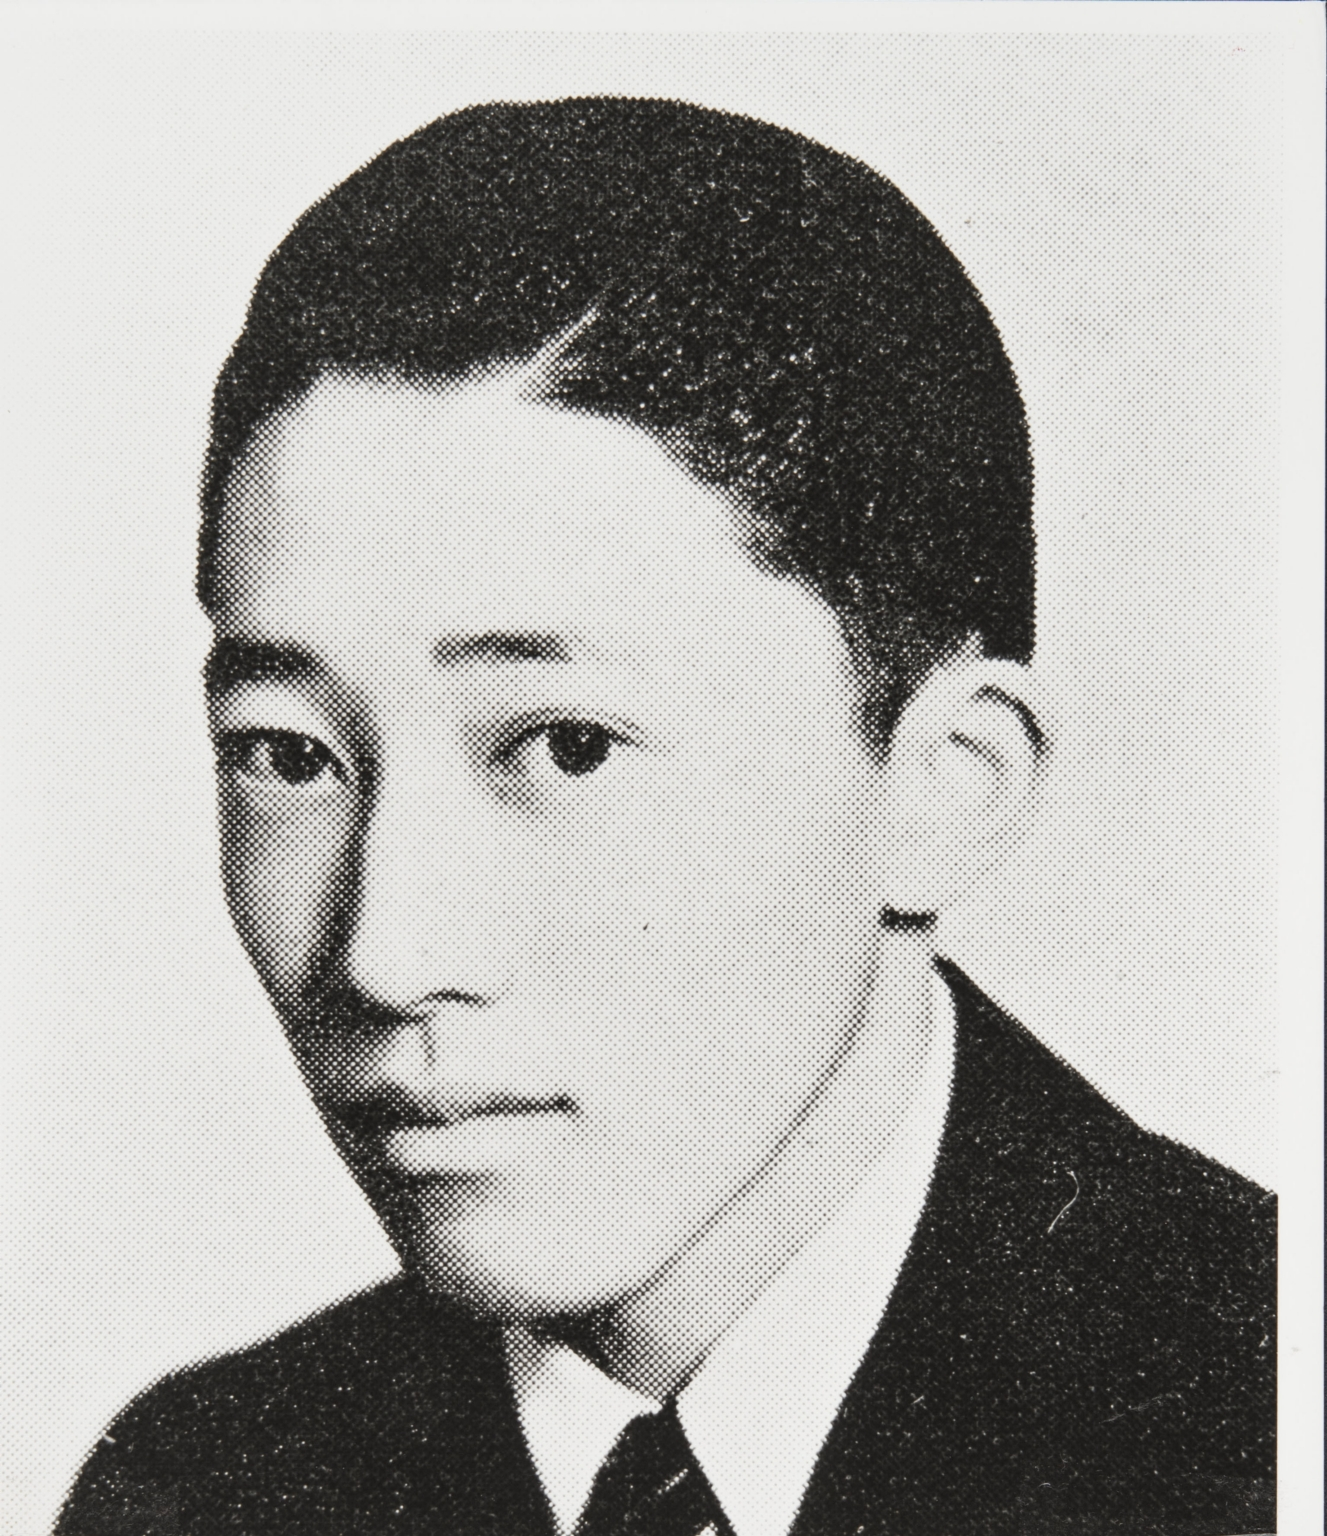 Ichiro Ota, active in track and basketball at Lompoc High School. Graduated in 1936.